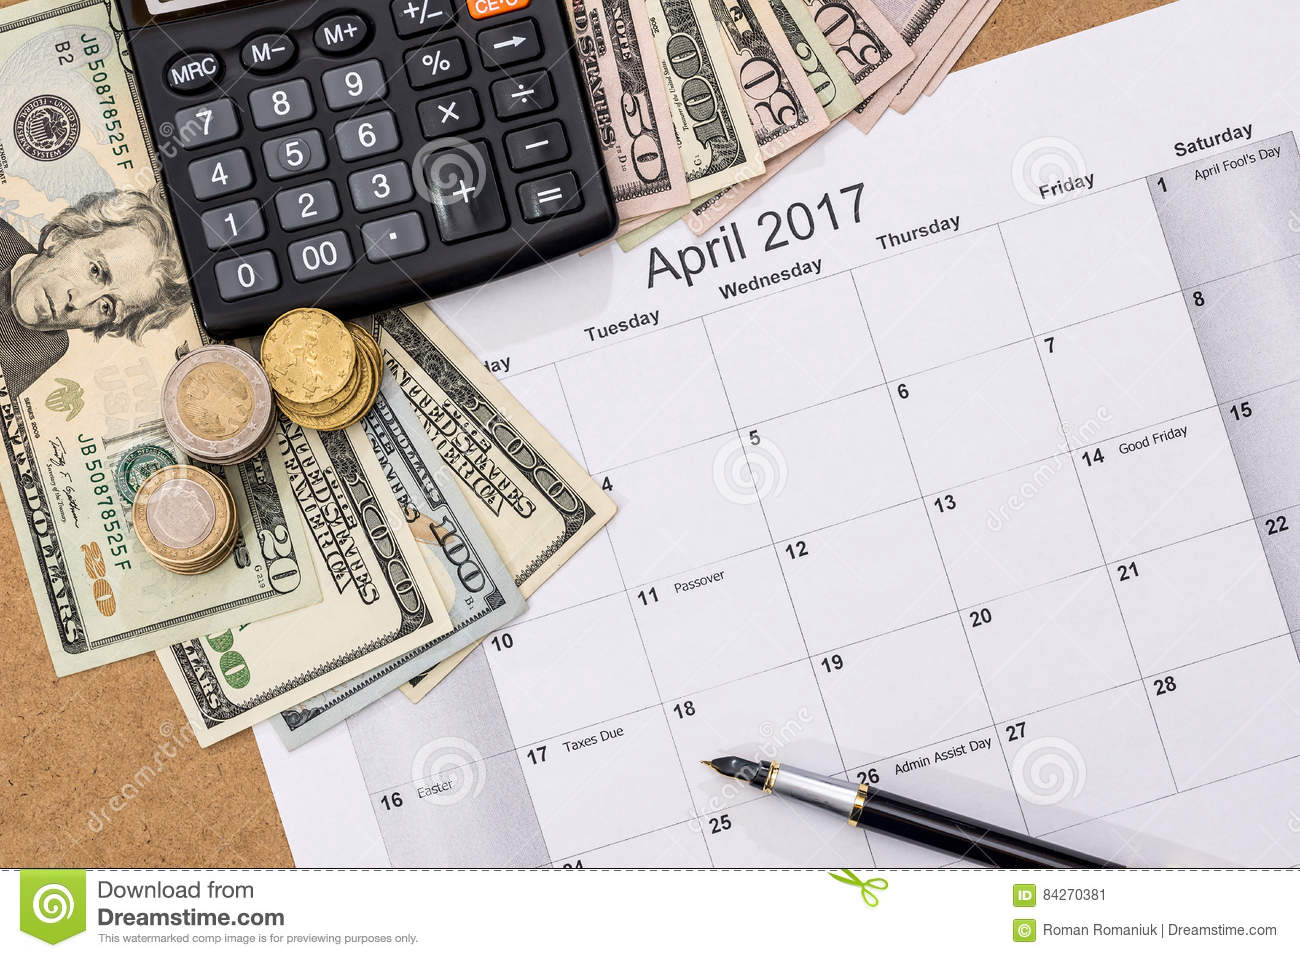 Money calculator coins us dollar banknote stock photo (edit now.